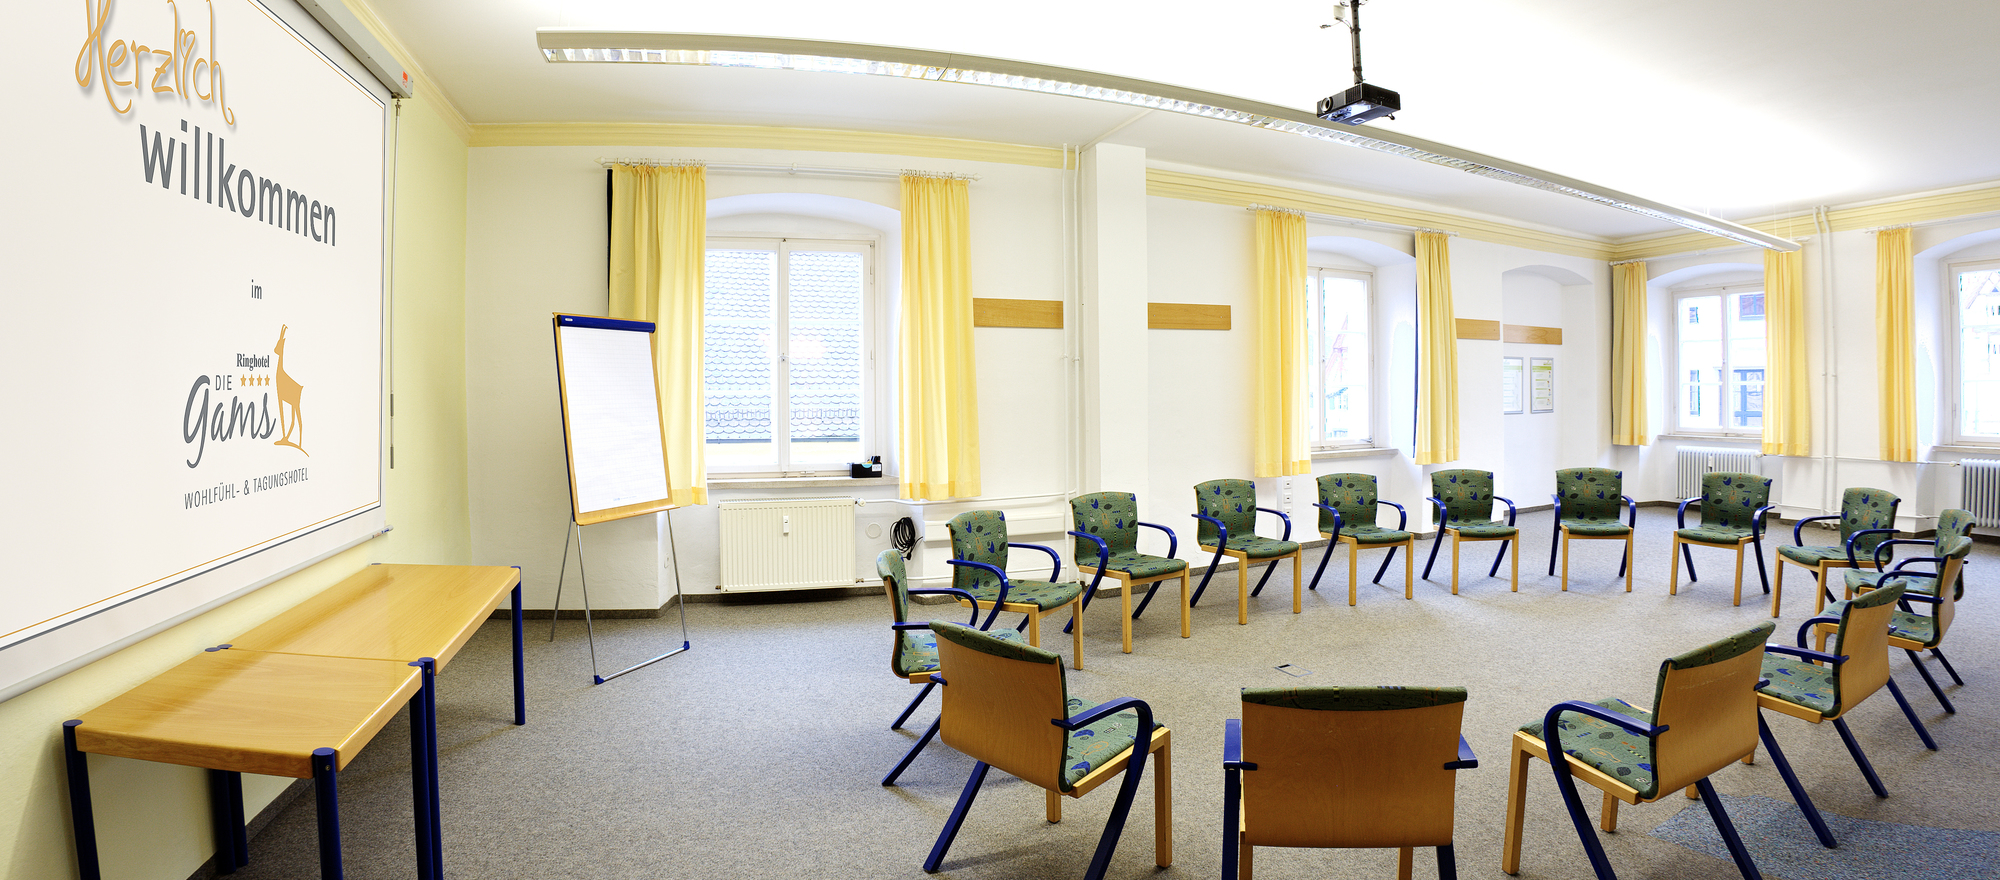 Generous meeting rooms at the Ringhotel Die Gams in Beilngries, 4 star hotel in Upper Bavaria